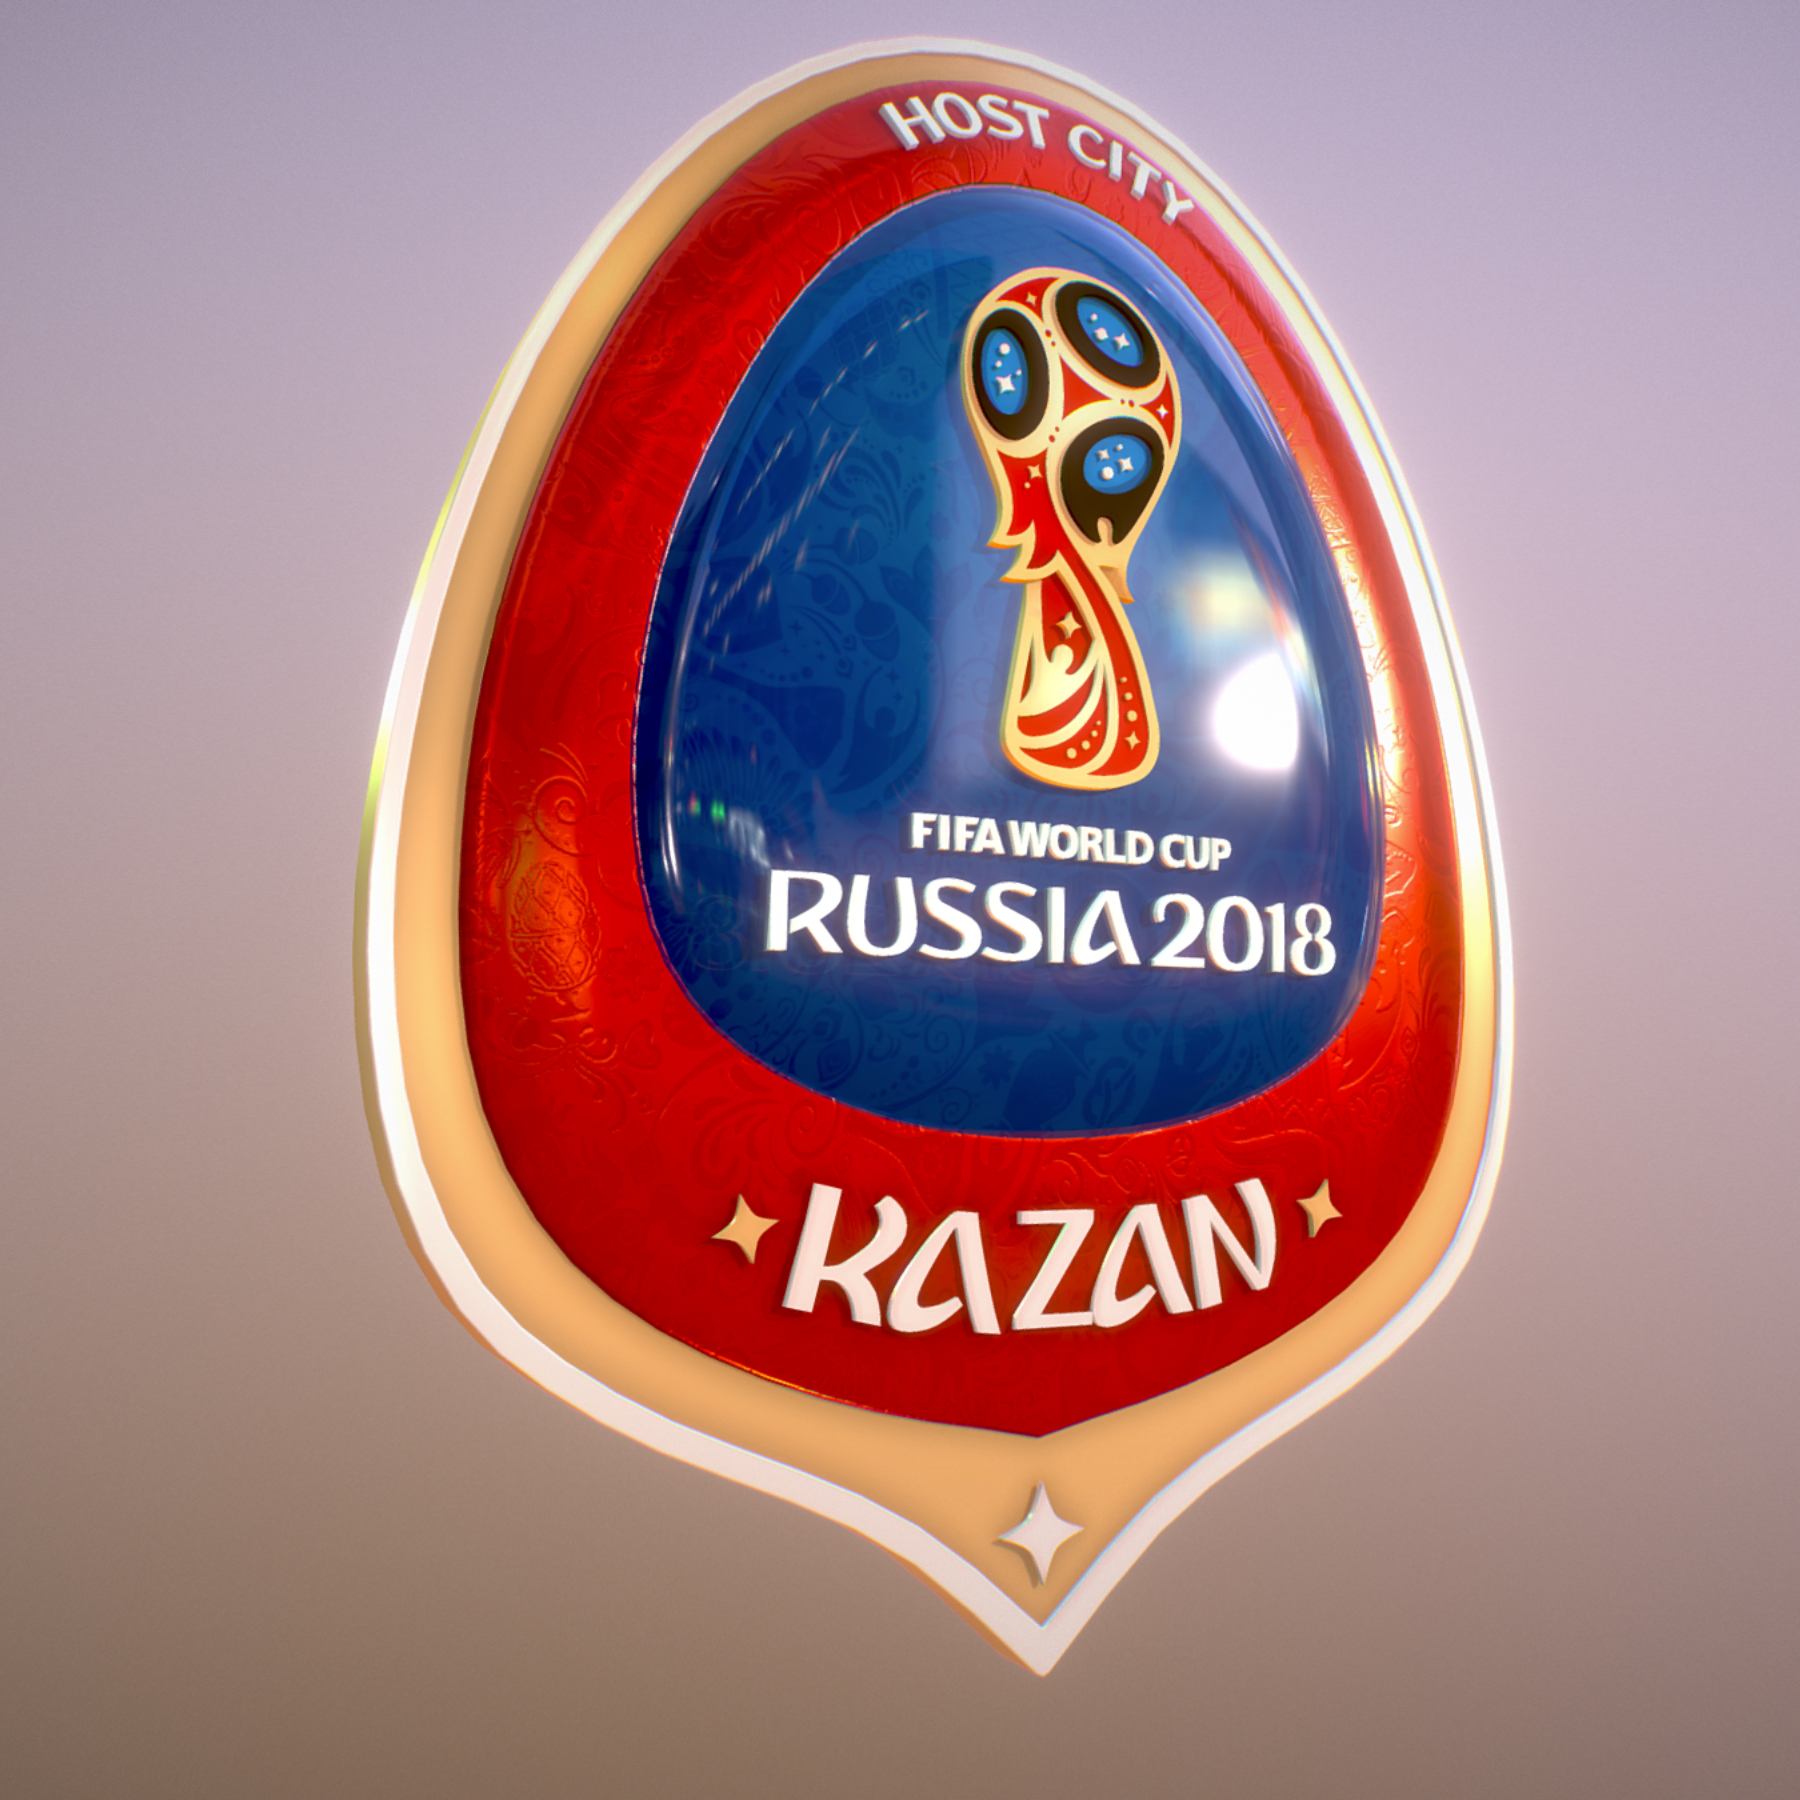 kazan host city world cup russia 2018 symbol 3d model max  fbx jpeg jpg ma mb obj 271690